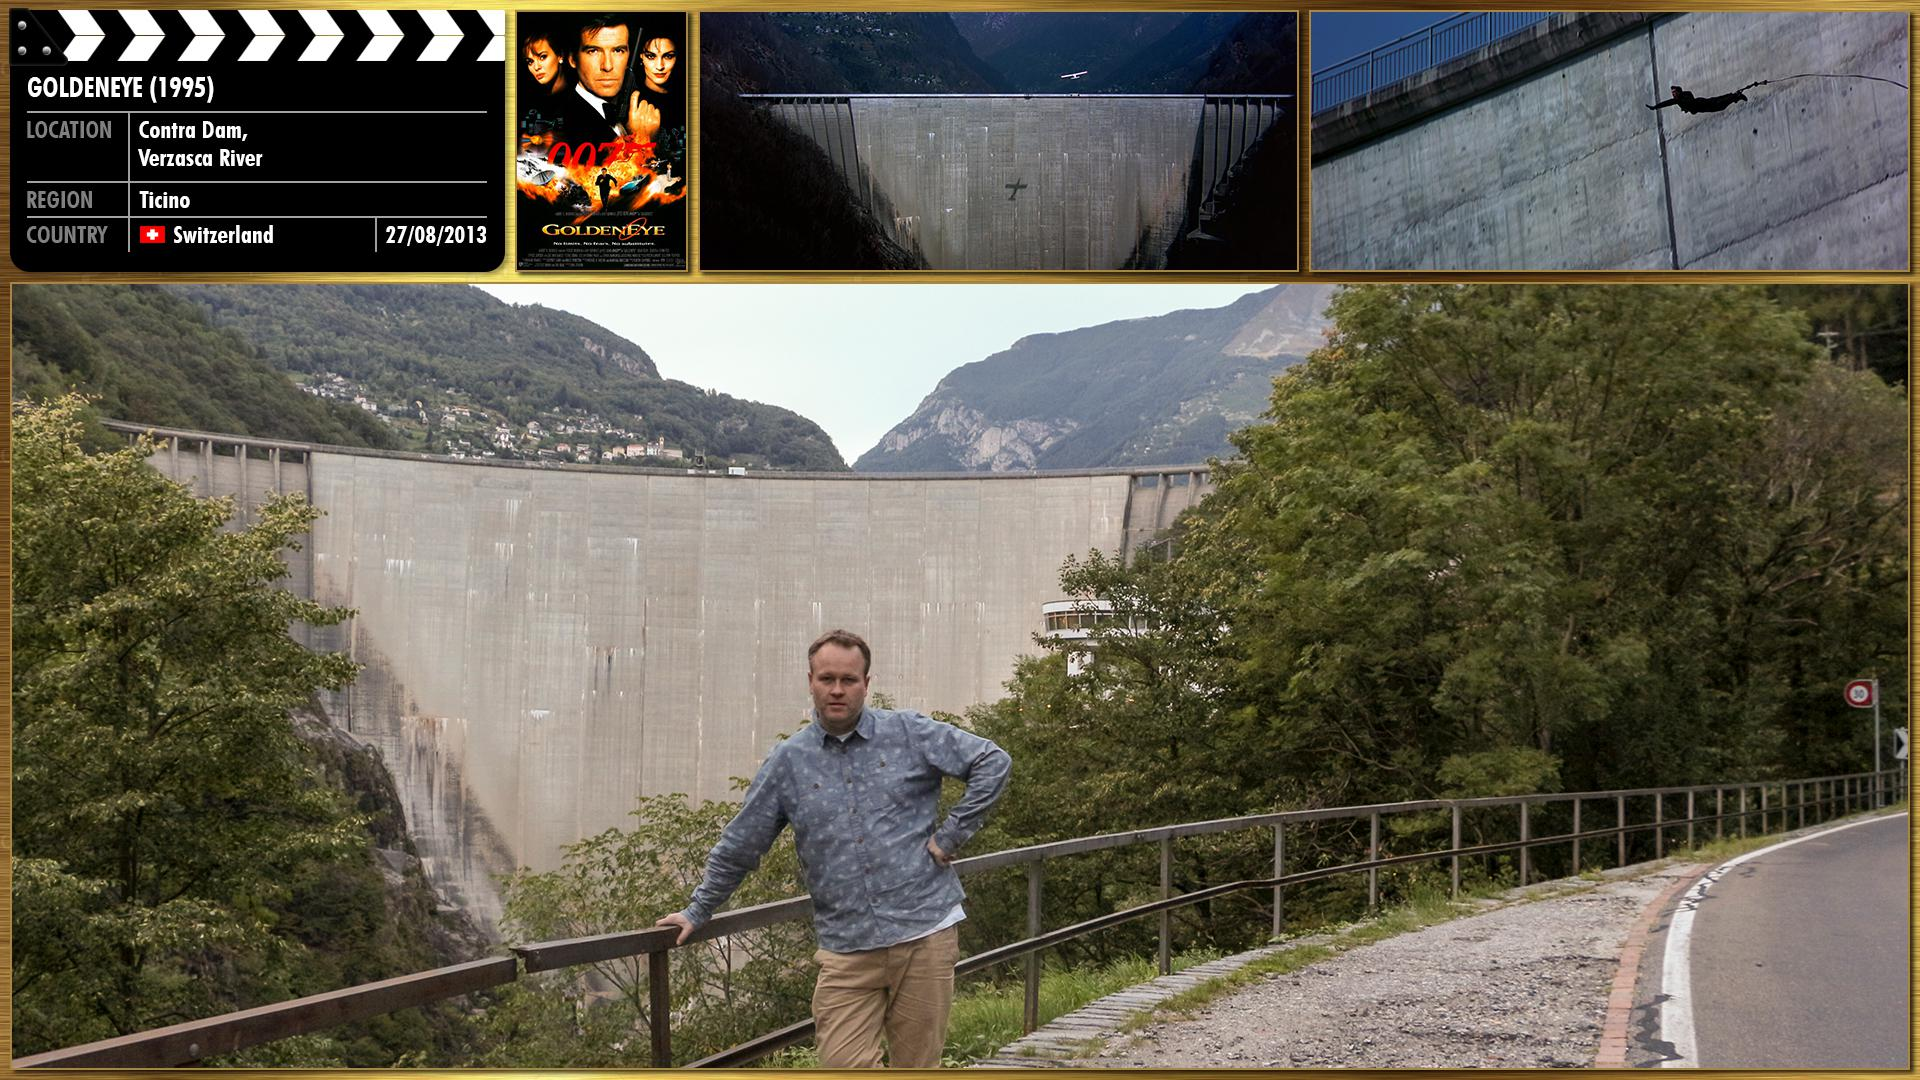 Filming location photo for GoldenEye (1995) 4 of 5